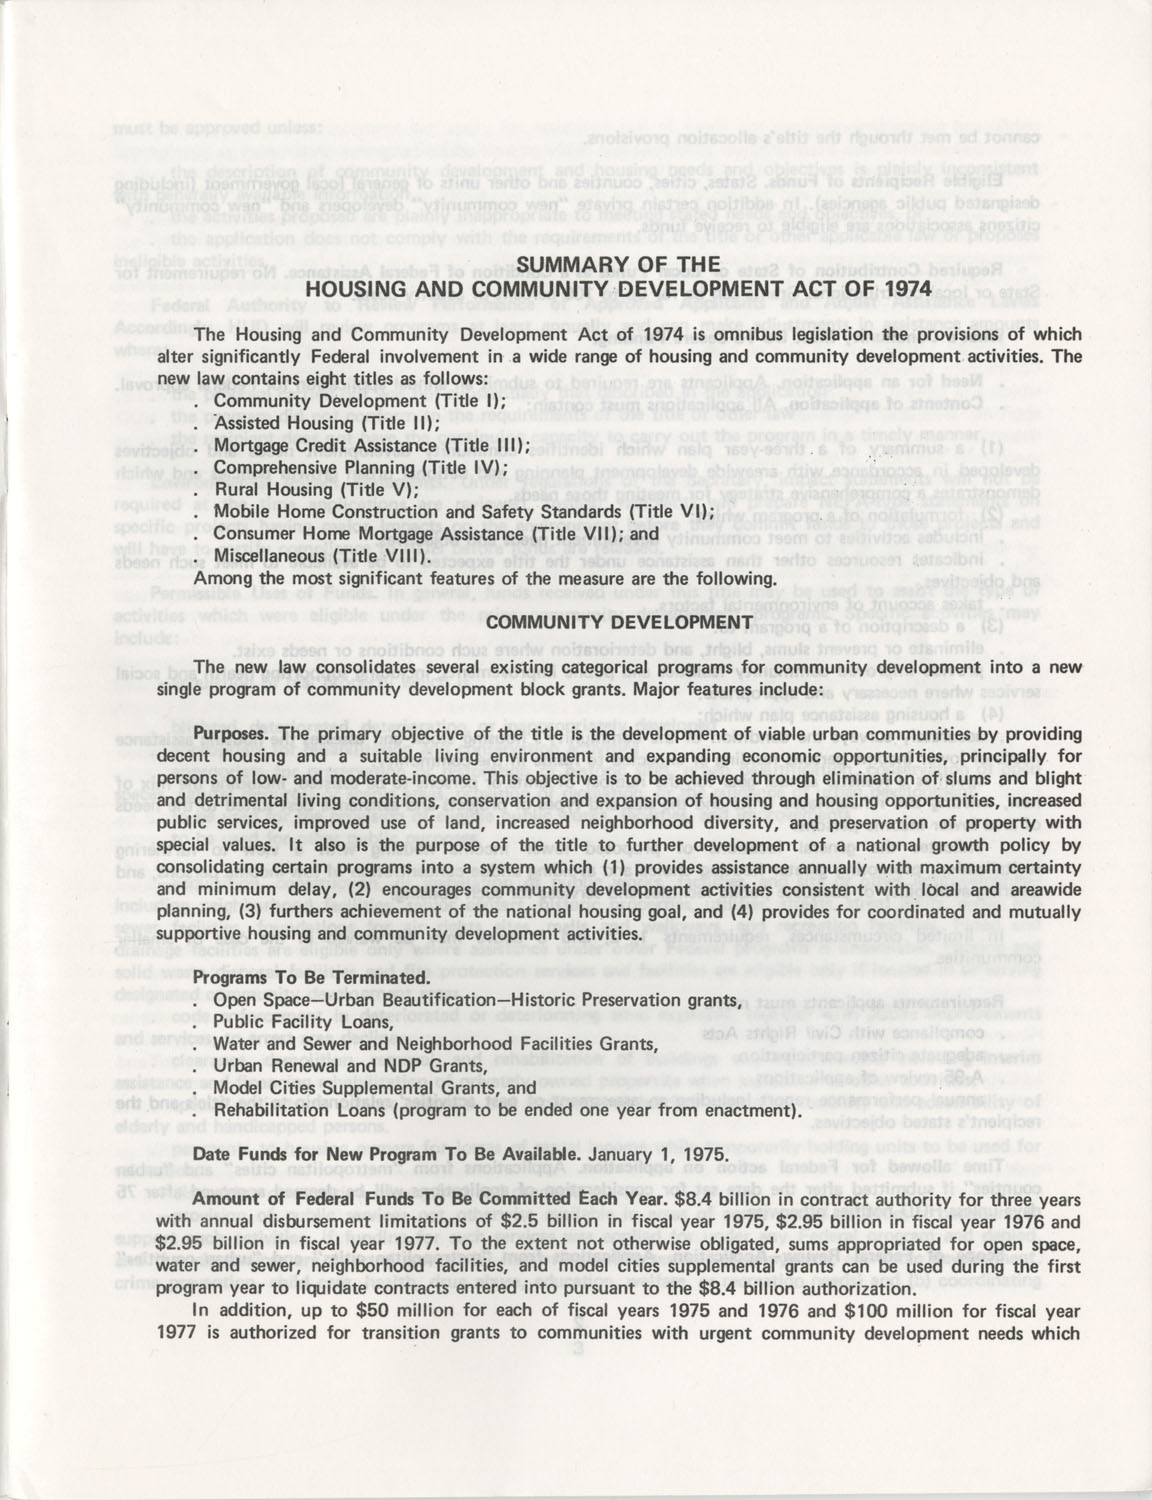 Summary of the Housing and Community Development Act of 1974, Page 1